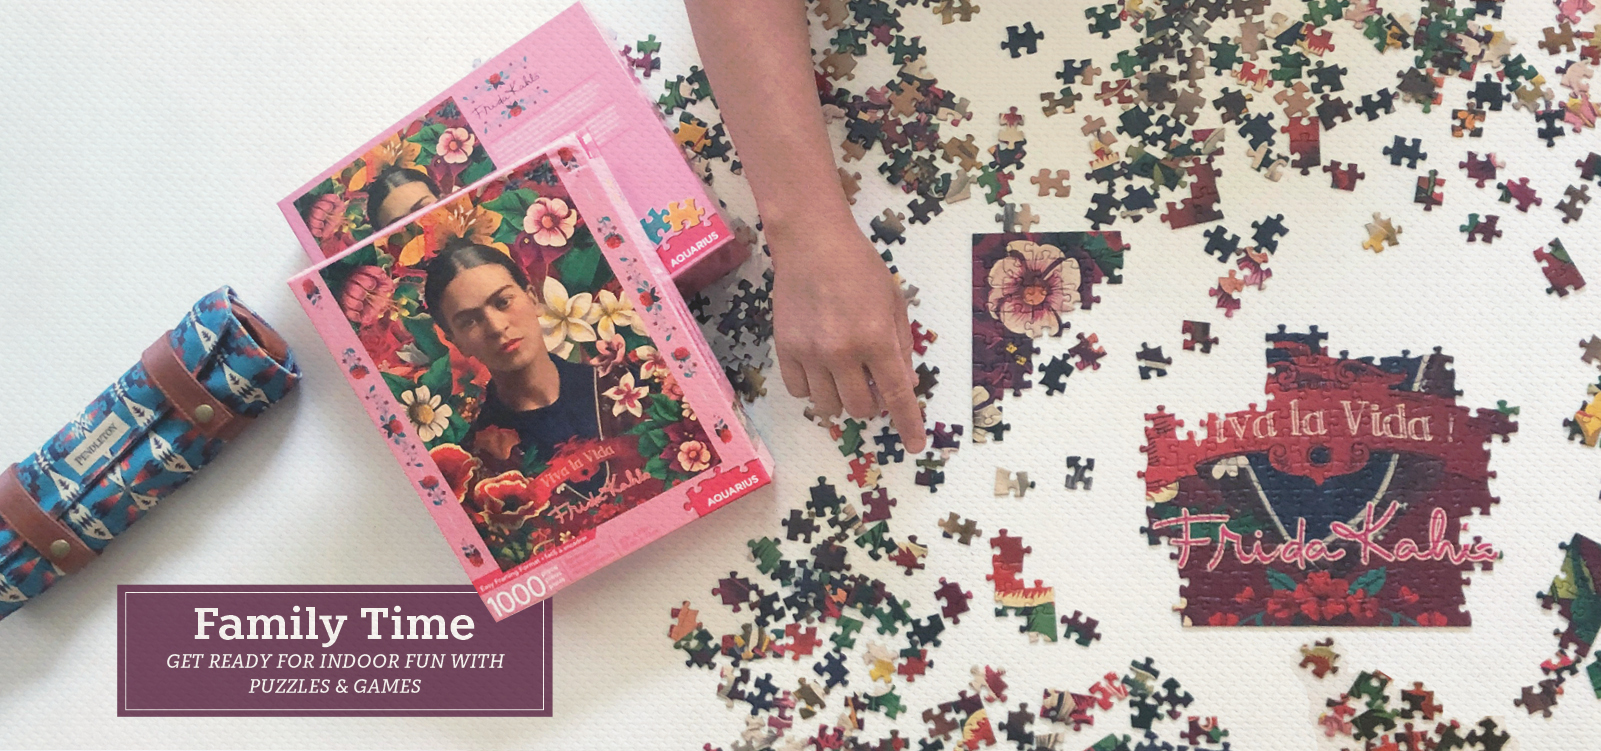 Picture of a half put together puzzle with an image of Frida Khalo. Family Time get ready for indoor fun with puzzles and games